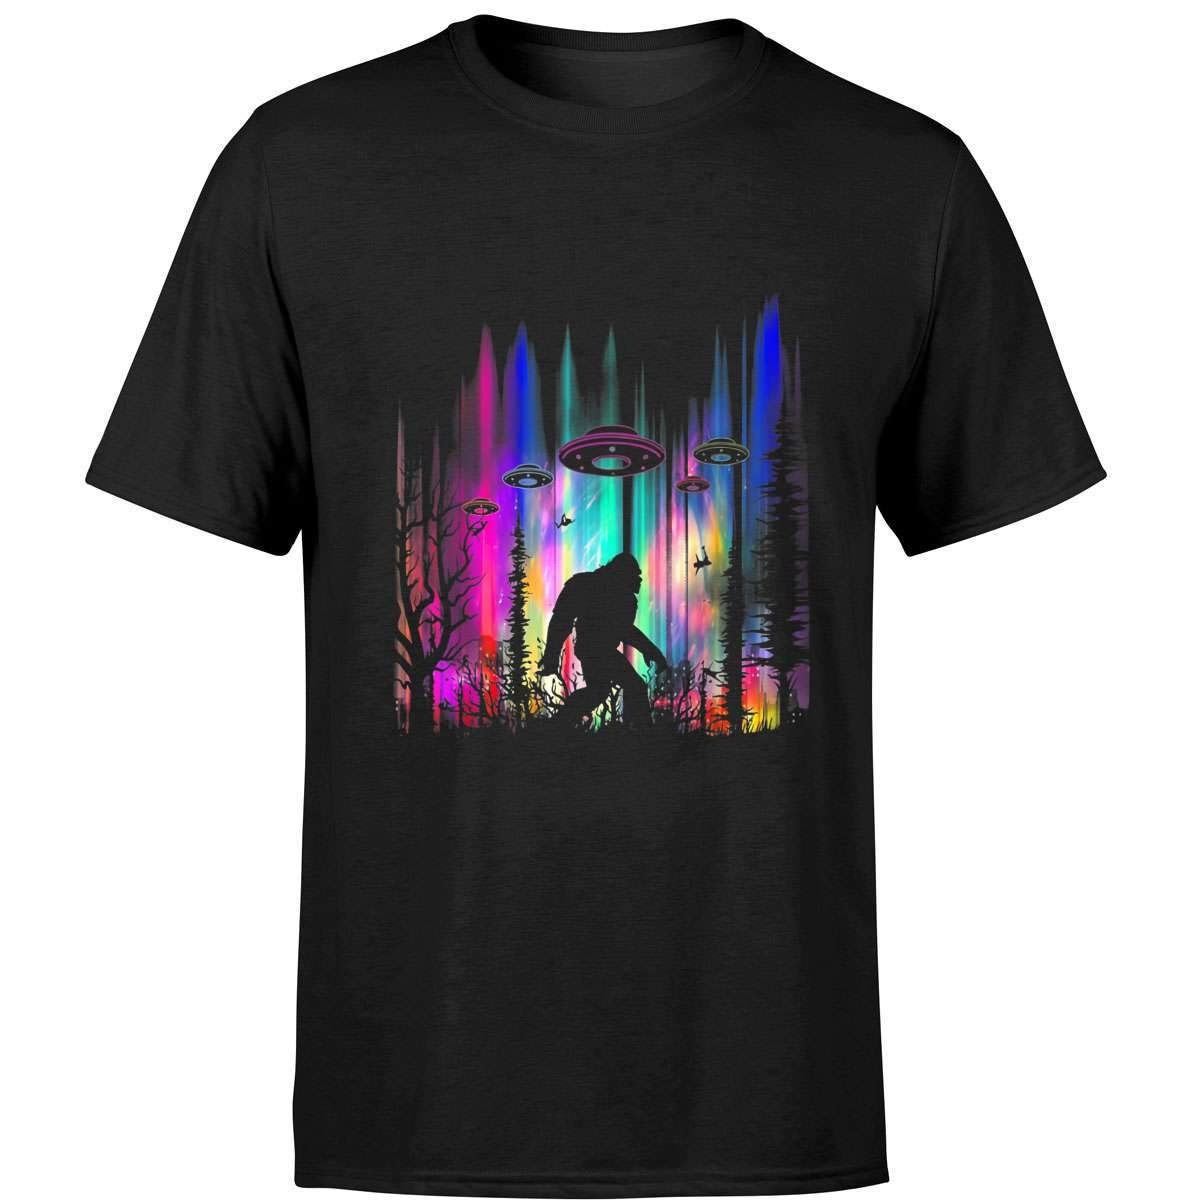 Ufo Abduction Northern Lights T-shirt For Believers